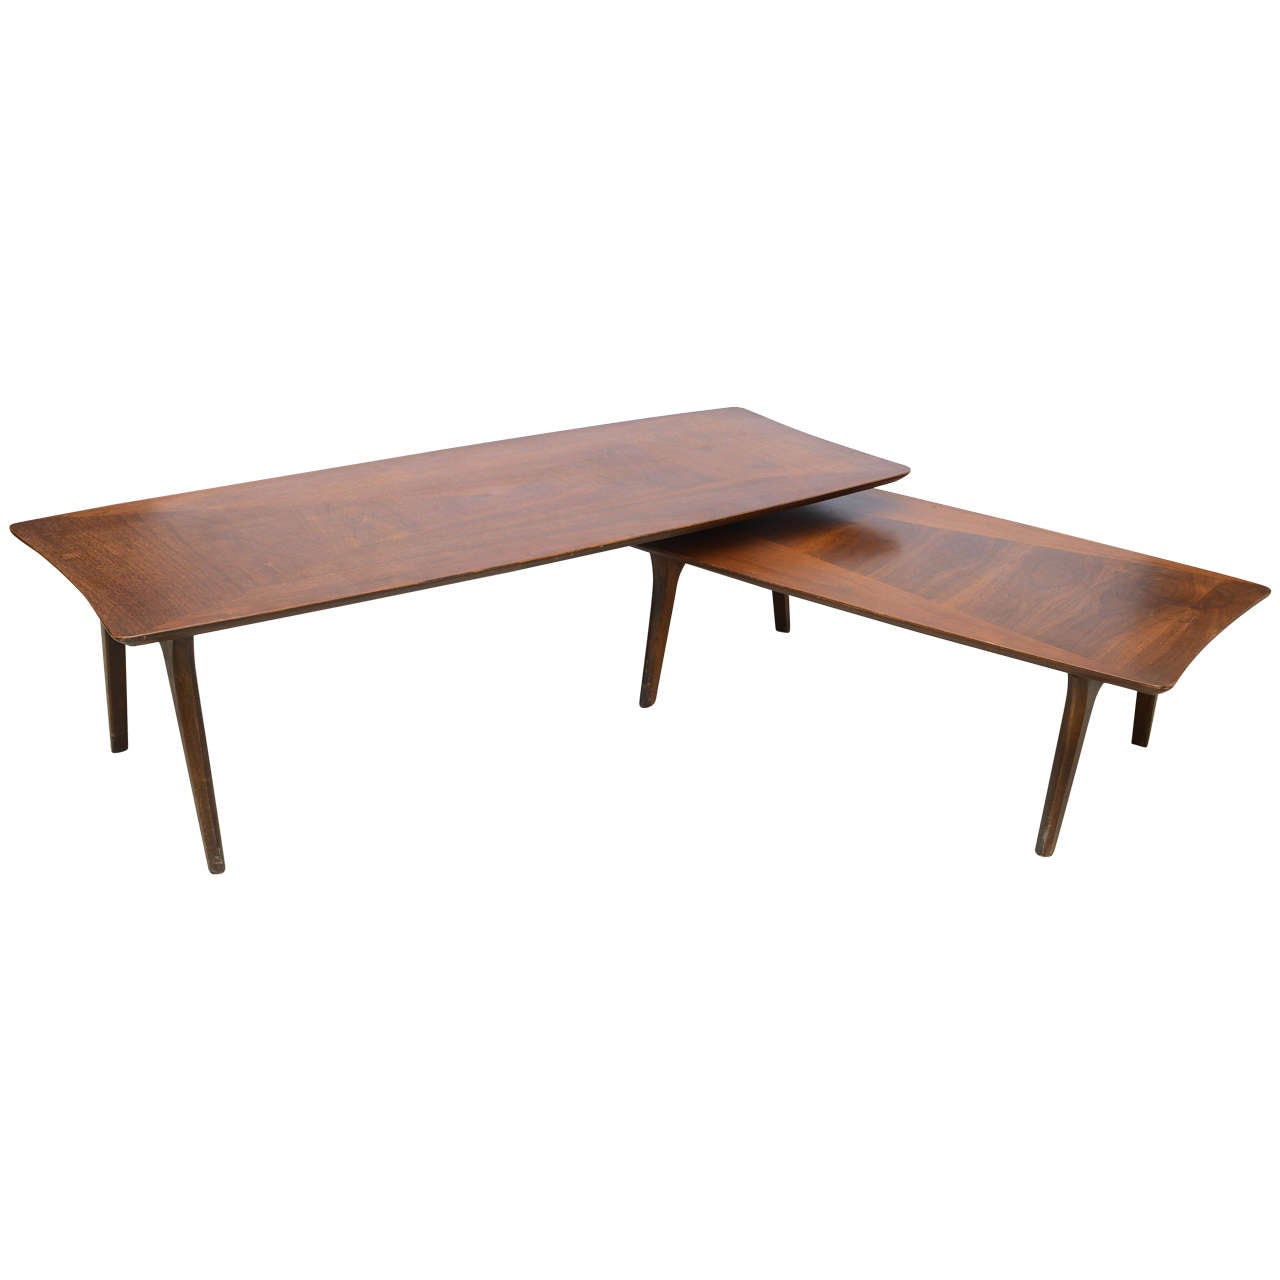 Pivot Or Swivel Mid Century Modern Coffee Table 1960s America At 1stdibs